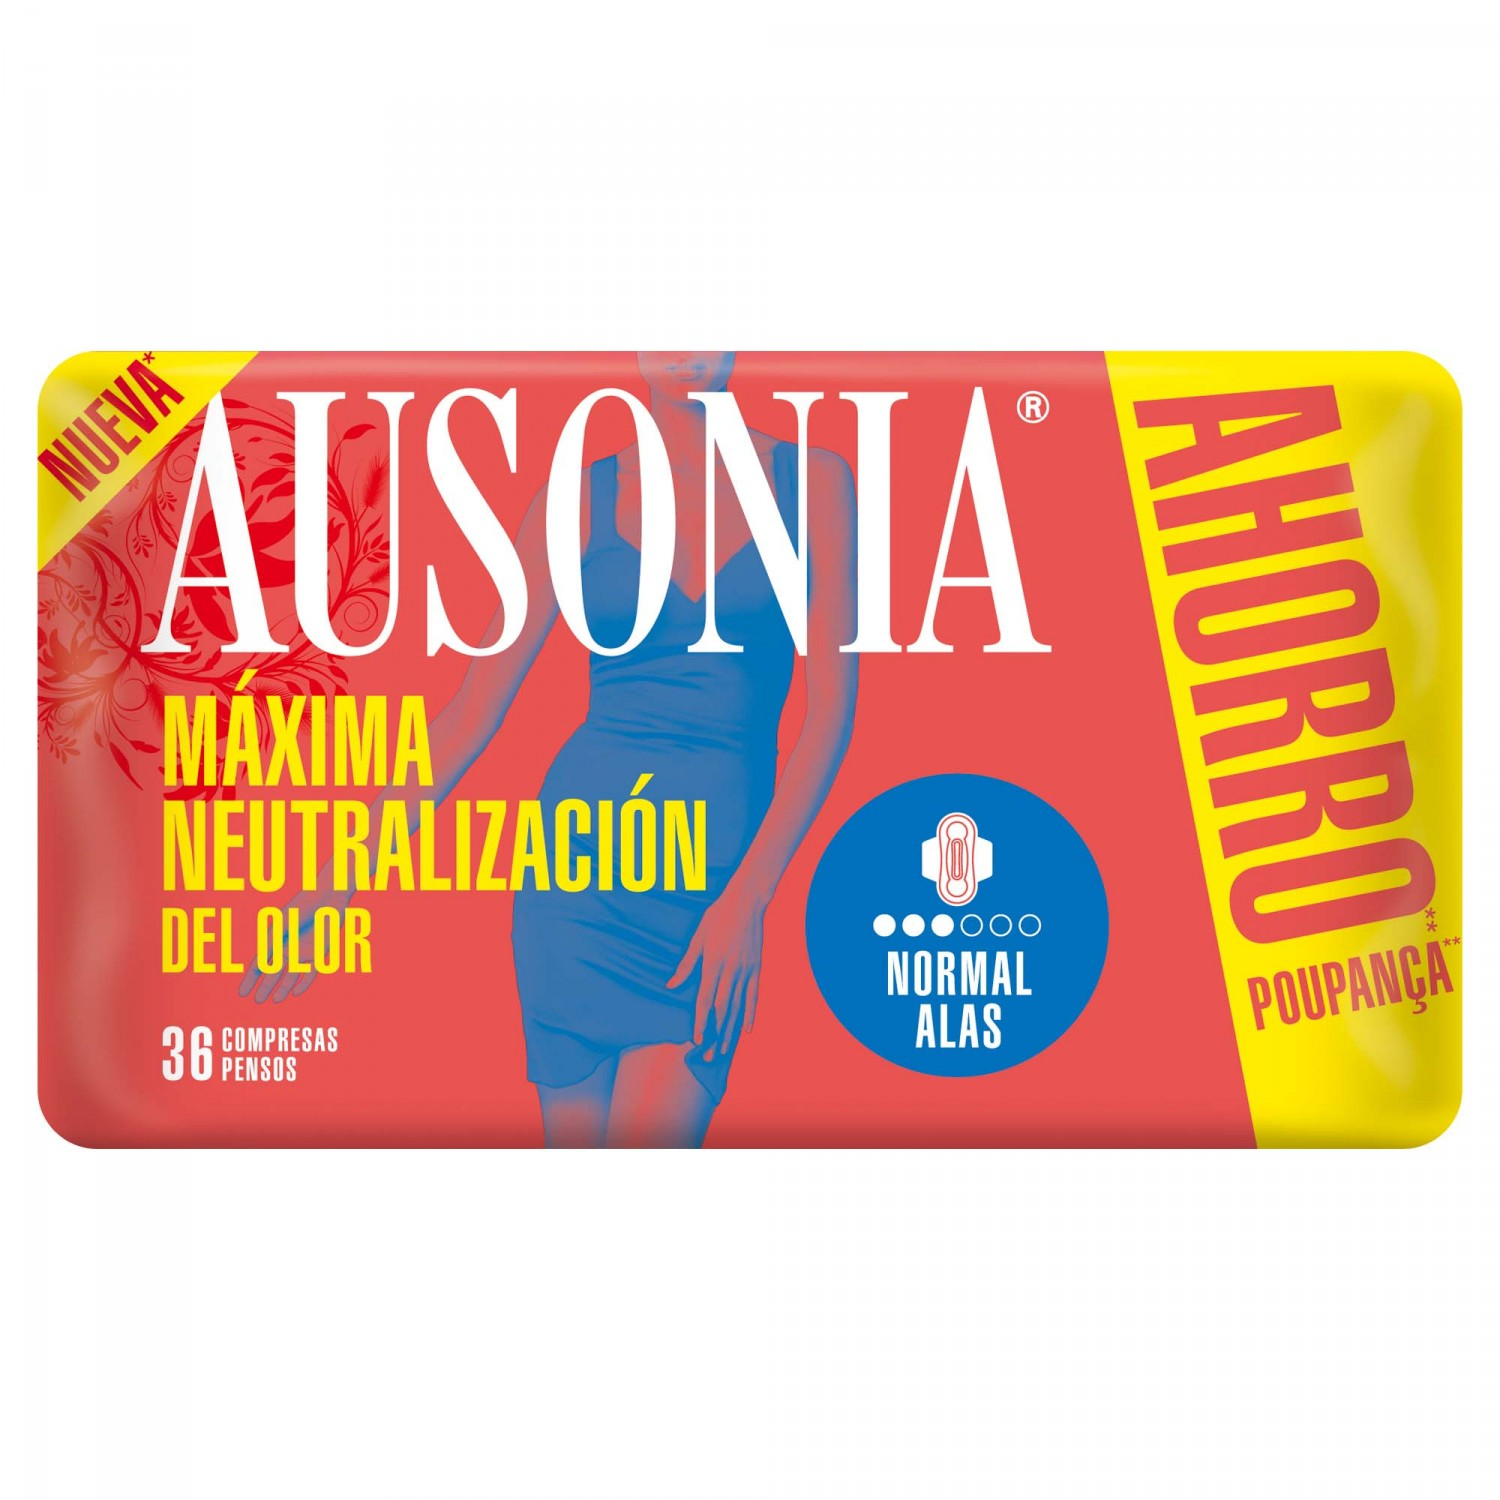 Ausonia compresa con alas normal pack ahorro 36 en bolsa